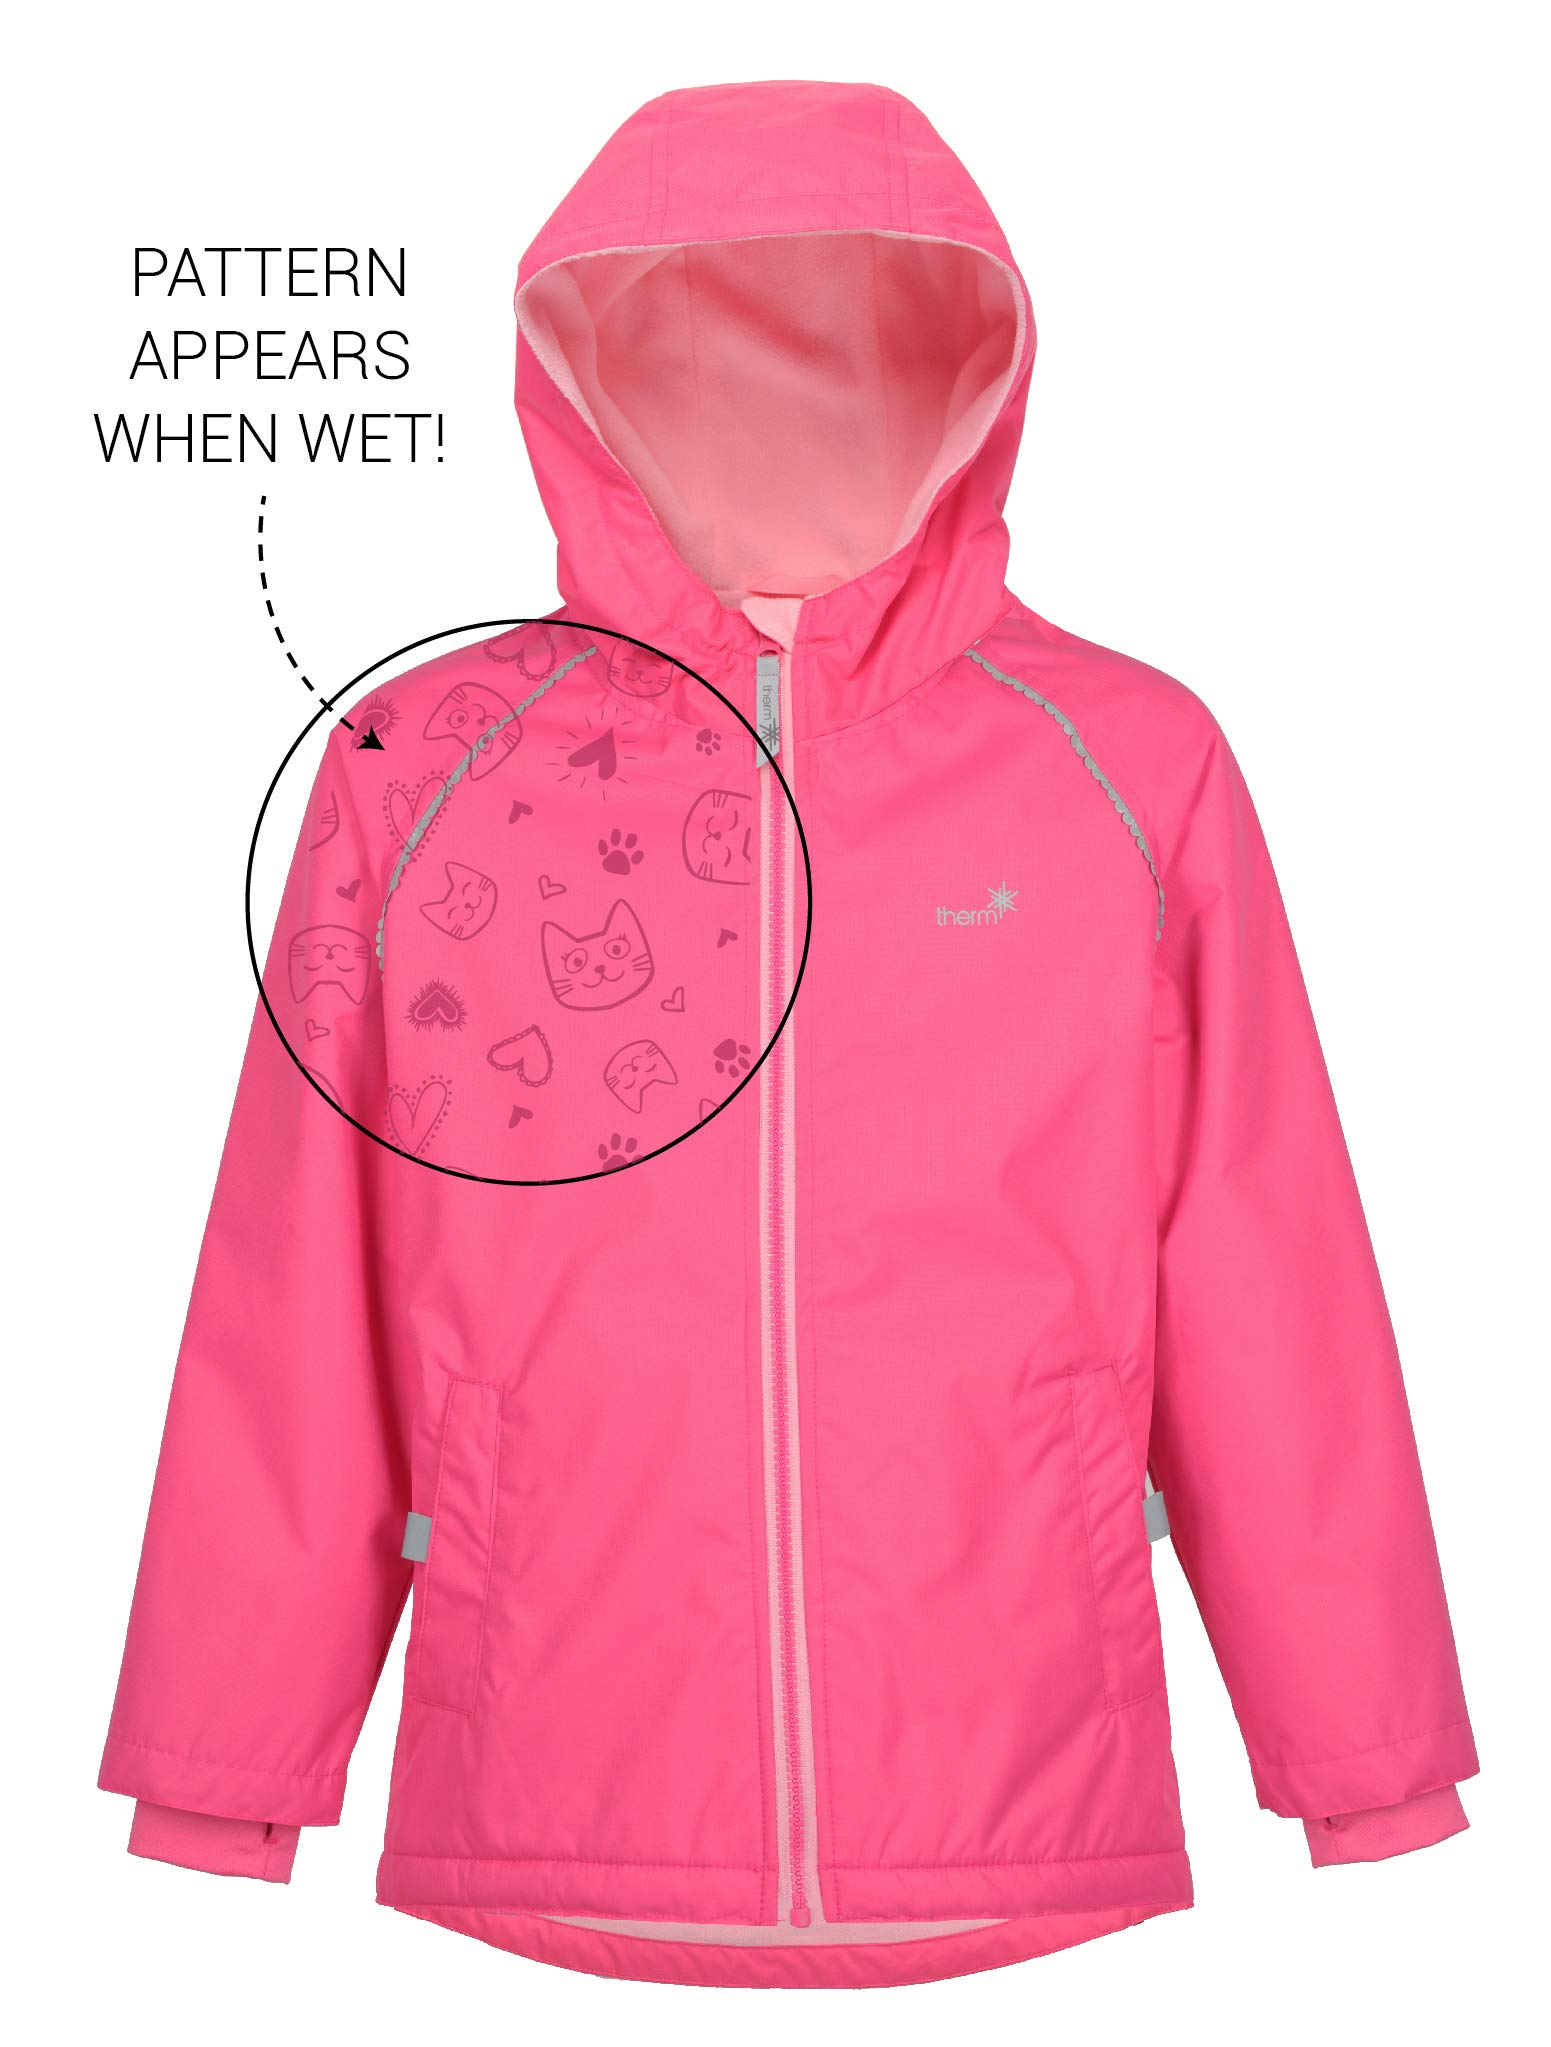 Therm Wind Waterproof Lightweight Fleece Lined Rain Jacket Magic Print (8, Paradise Pink)